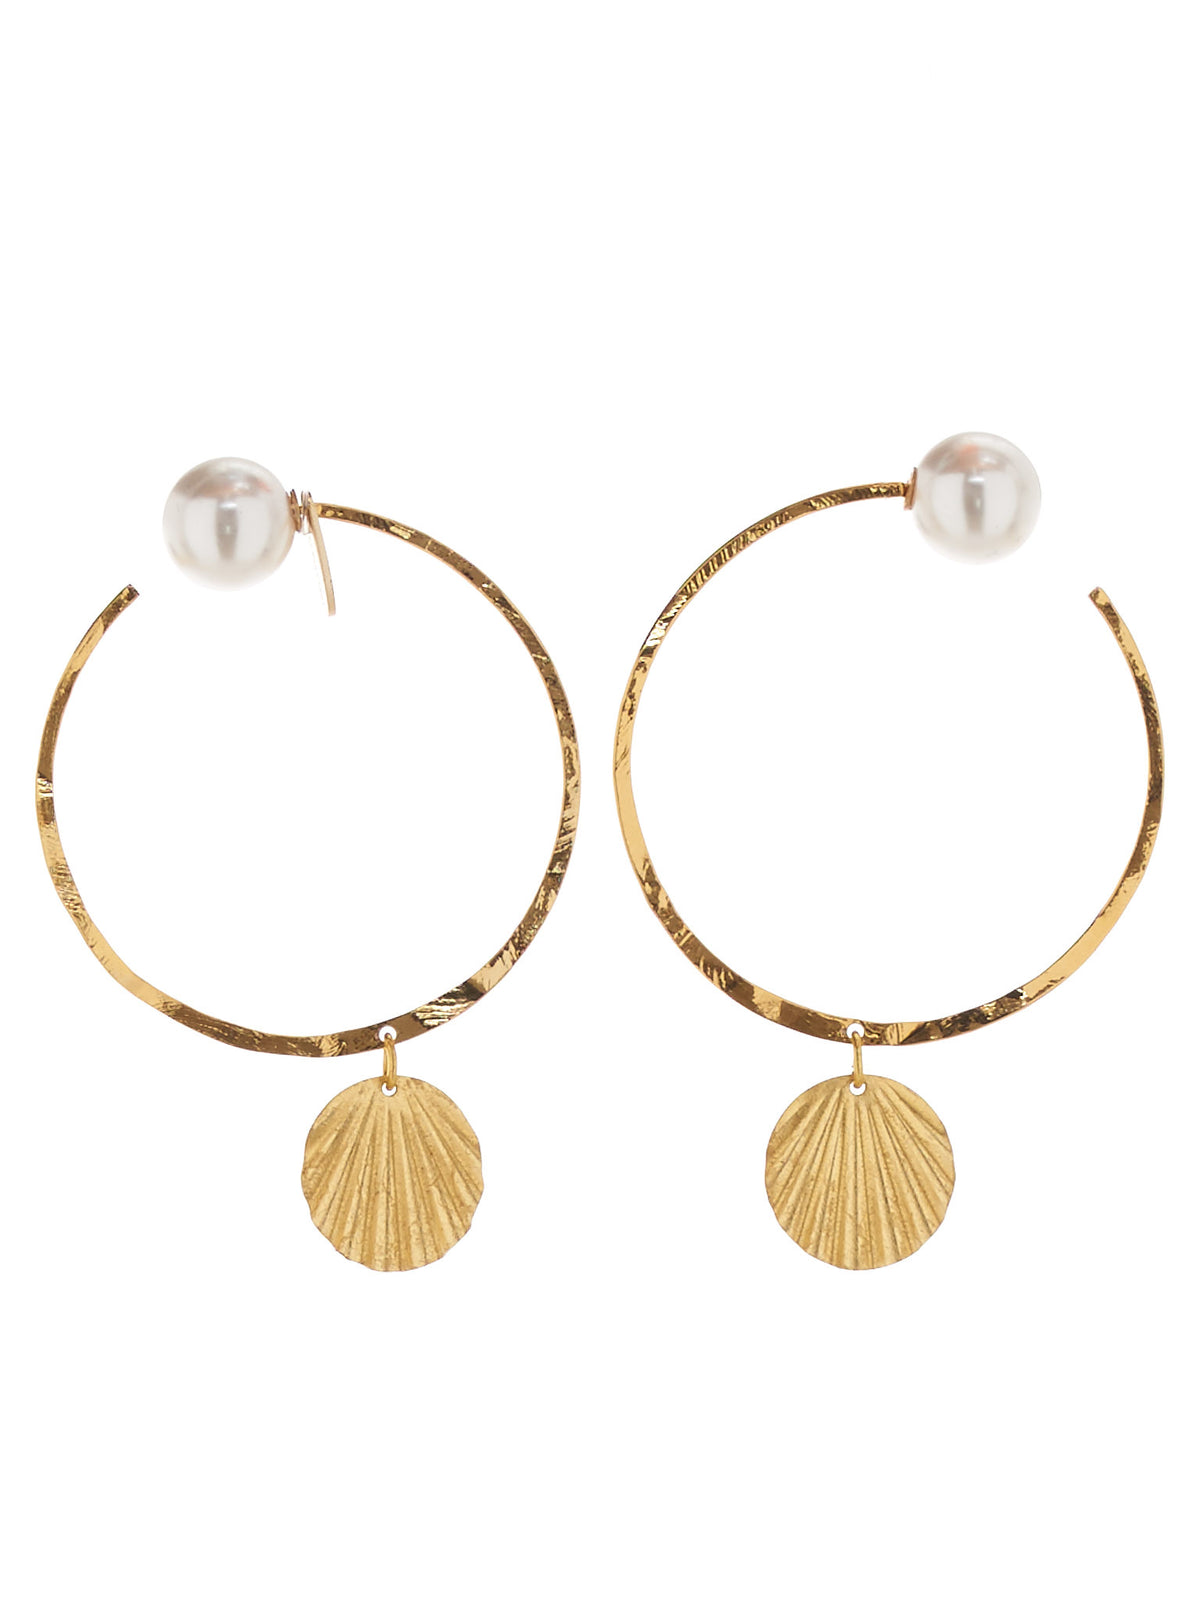 Coquina Earrings (826-G026-077-GOLD)